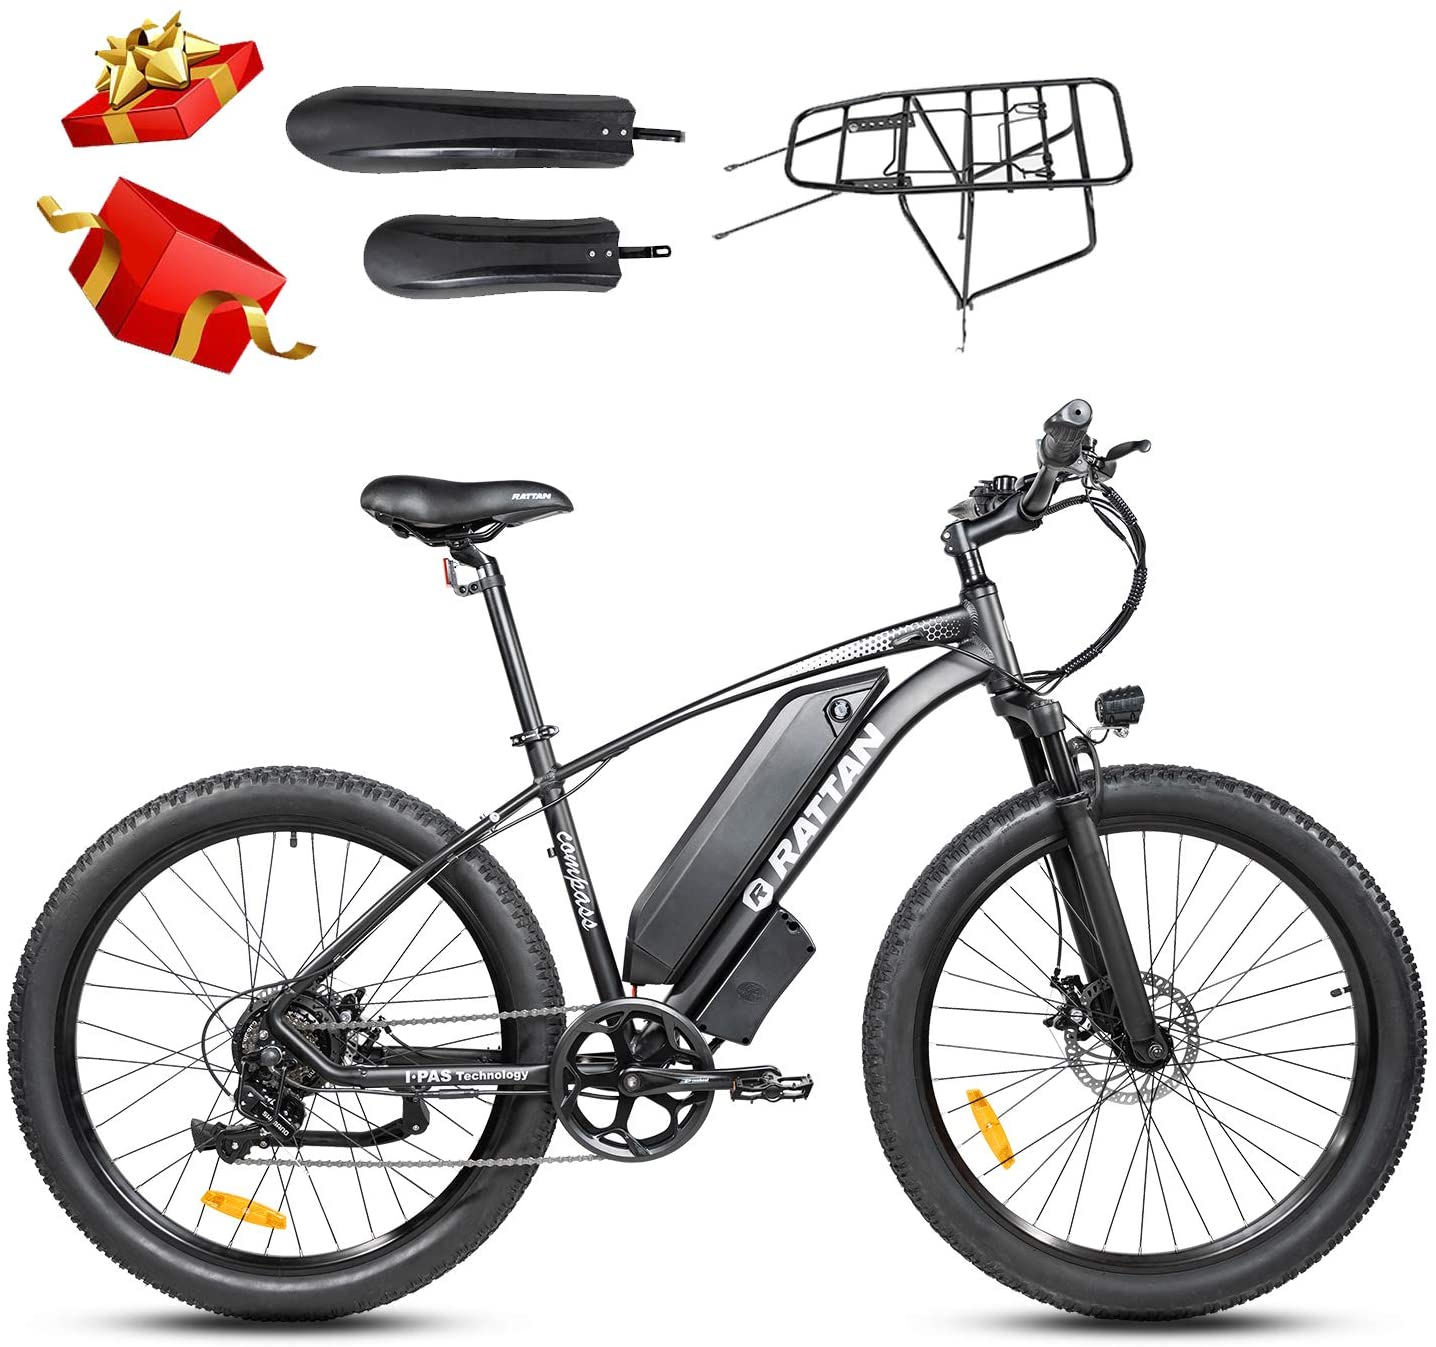 71SHHmZvHL. AC SL1500 A Selection of Top 500w Electric Bike Options